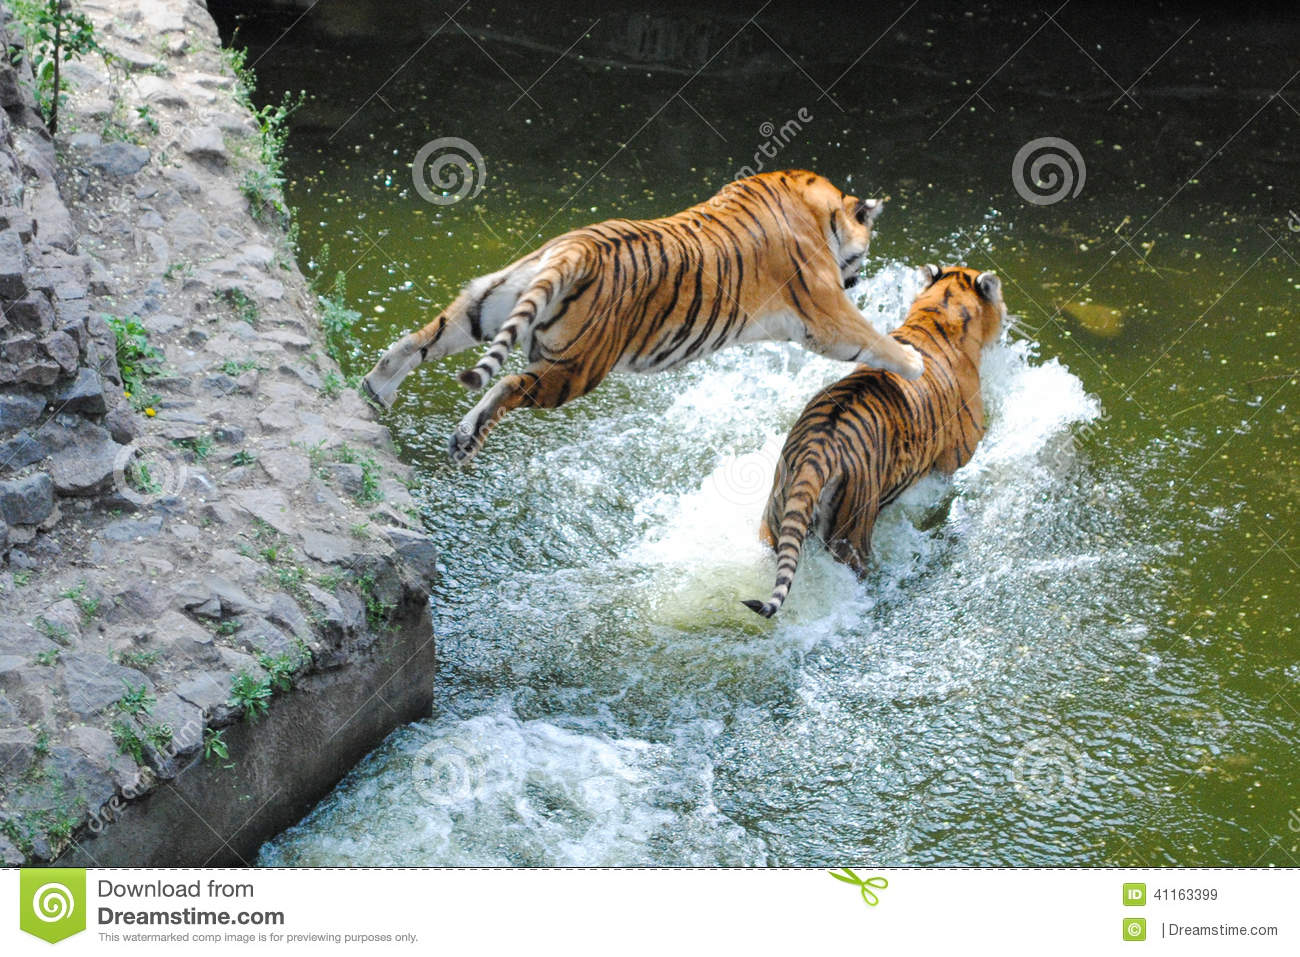 Snow Falling Video Wallpaper Tiger Jumping On Tiger In Water Stock Photo Image 41163399